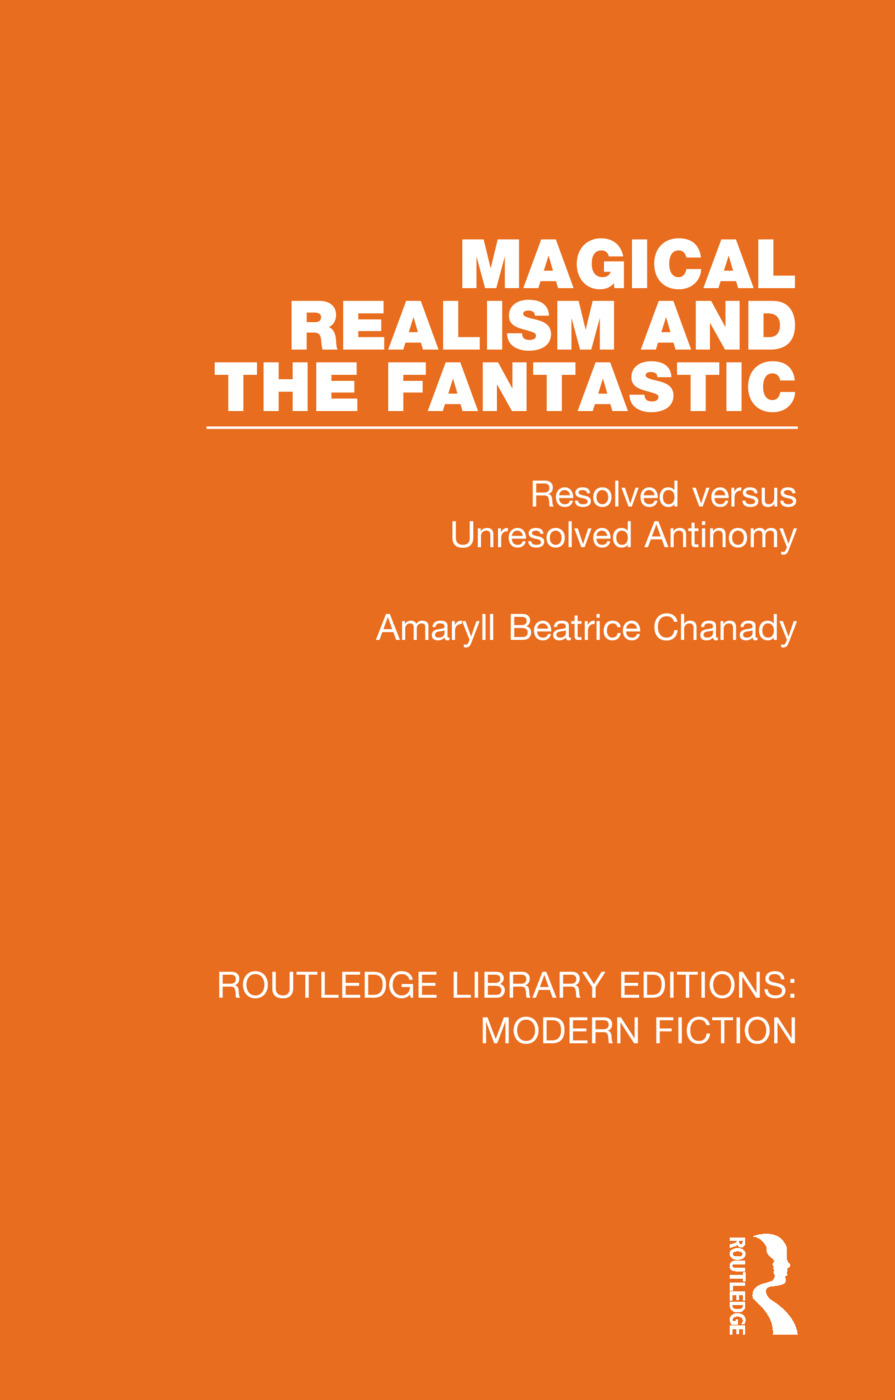 Magical Realism and the Fantastic: Resolved versus Unresolved Antinomy book cover